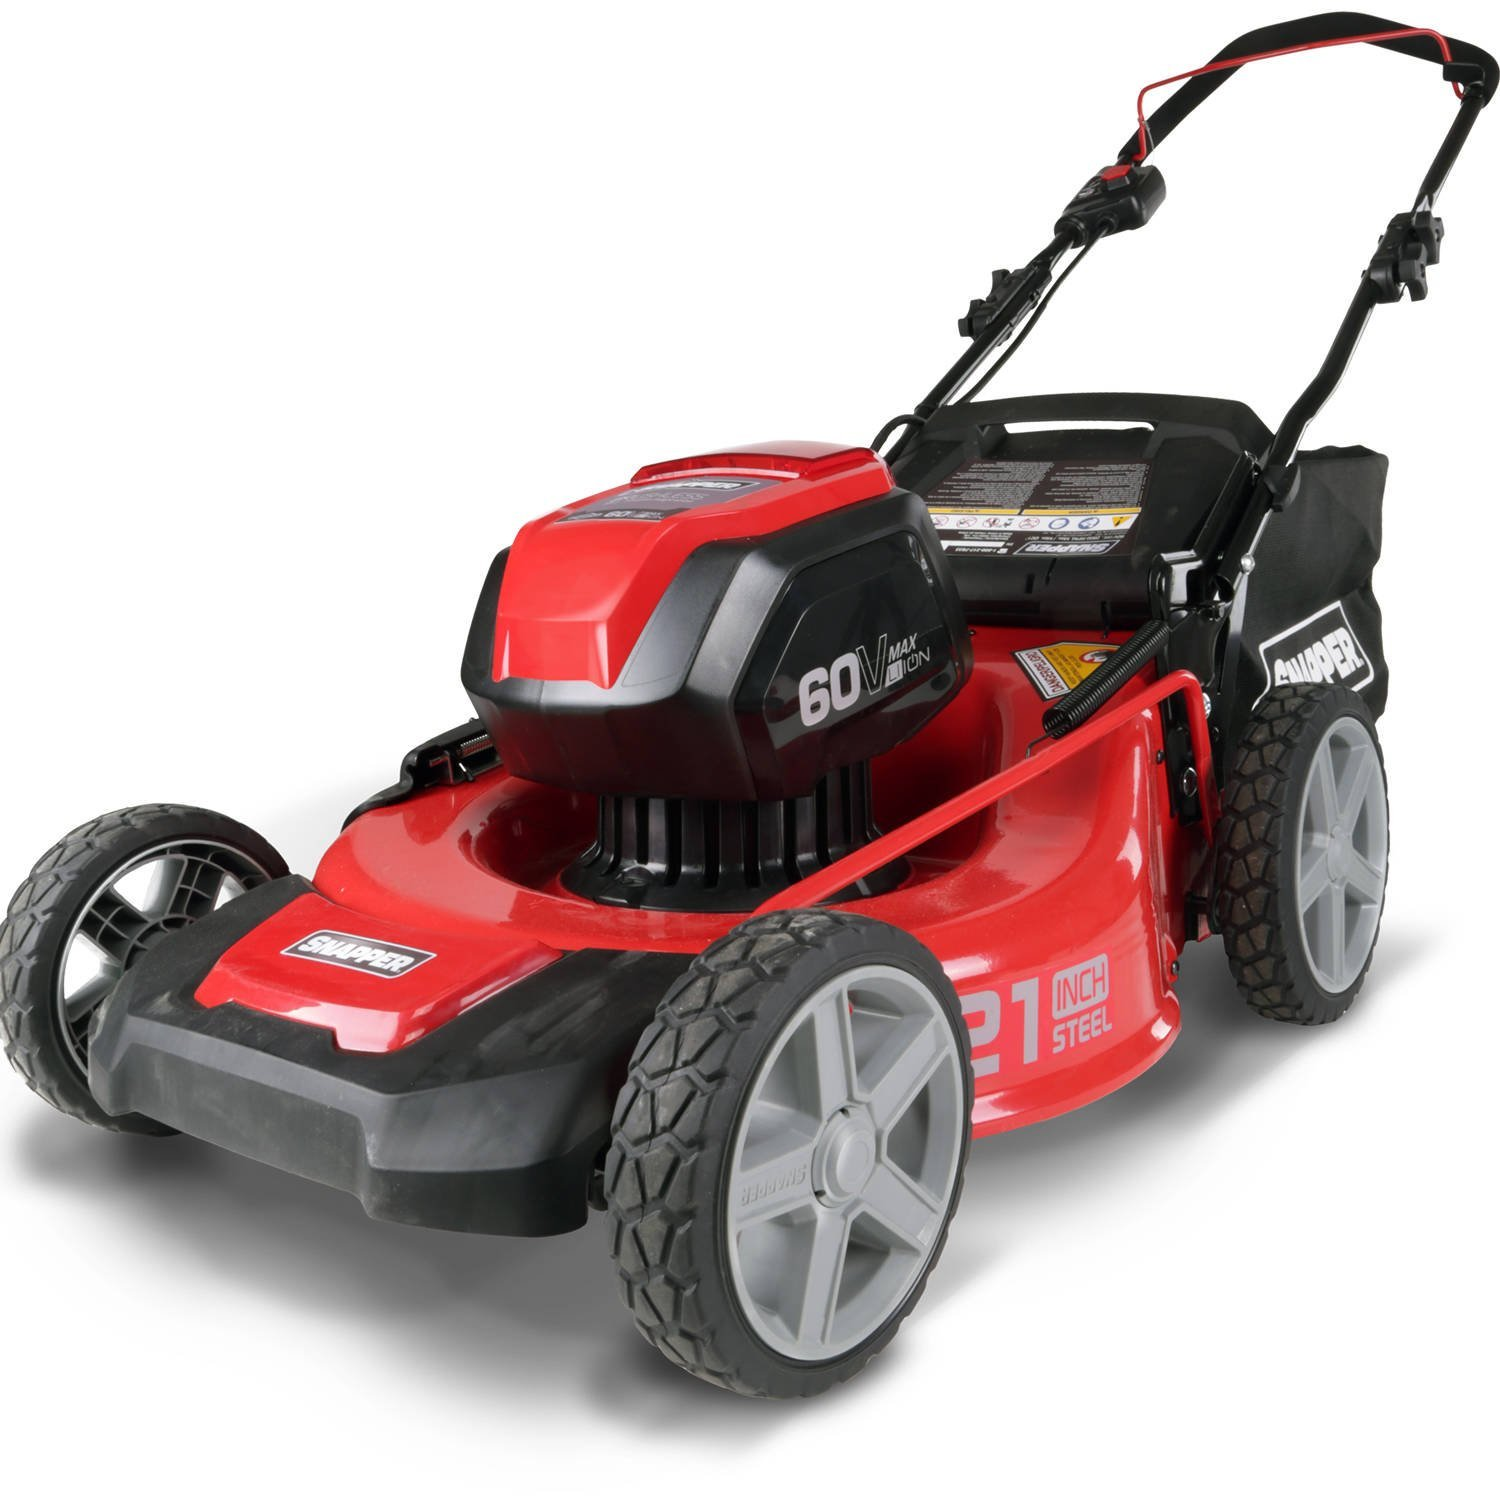 Amazon Snapper SP60V 60V Mower Includes 4Ah Battery and Charger